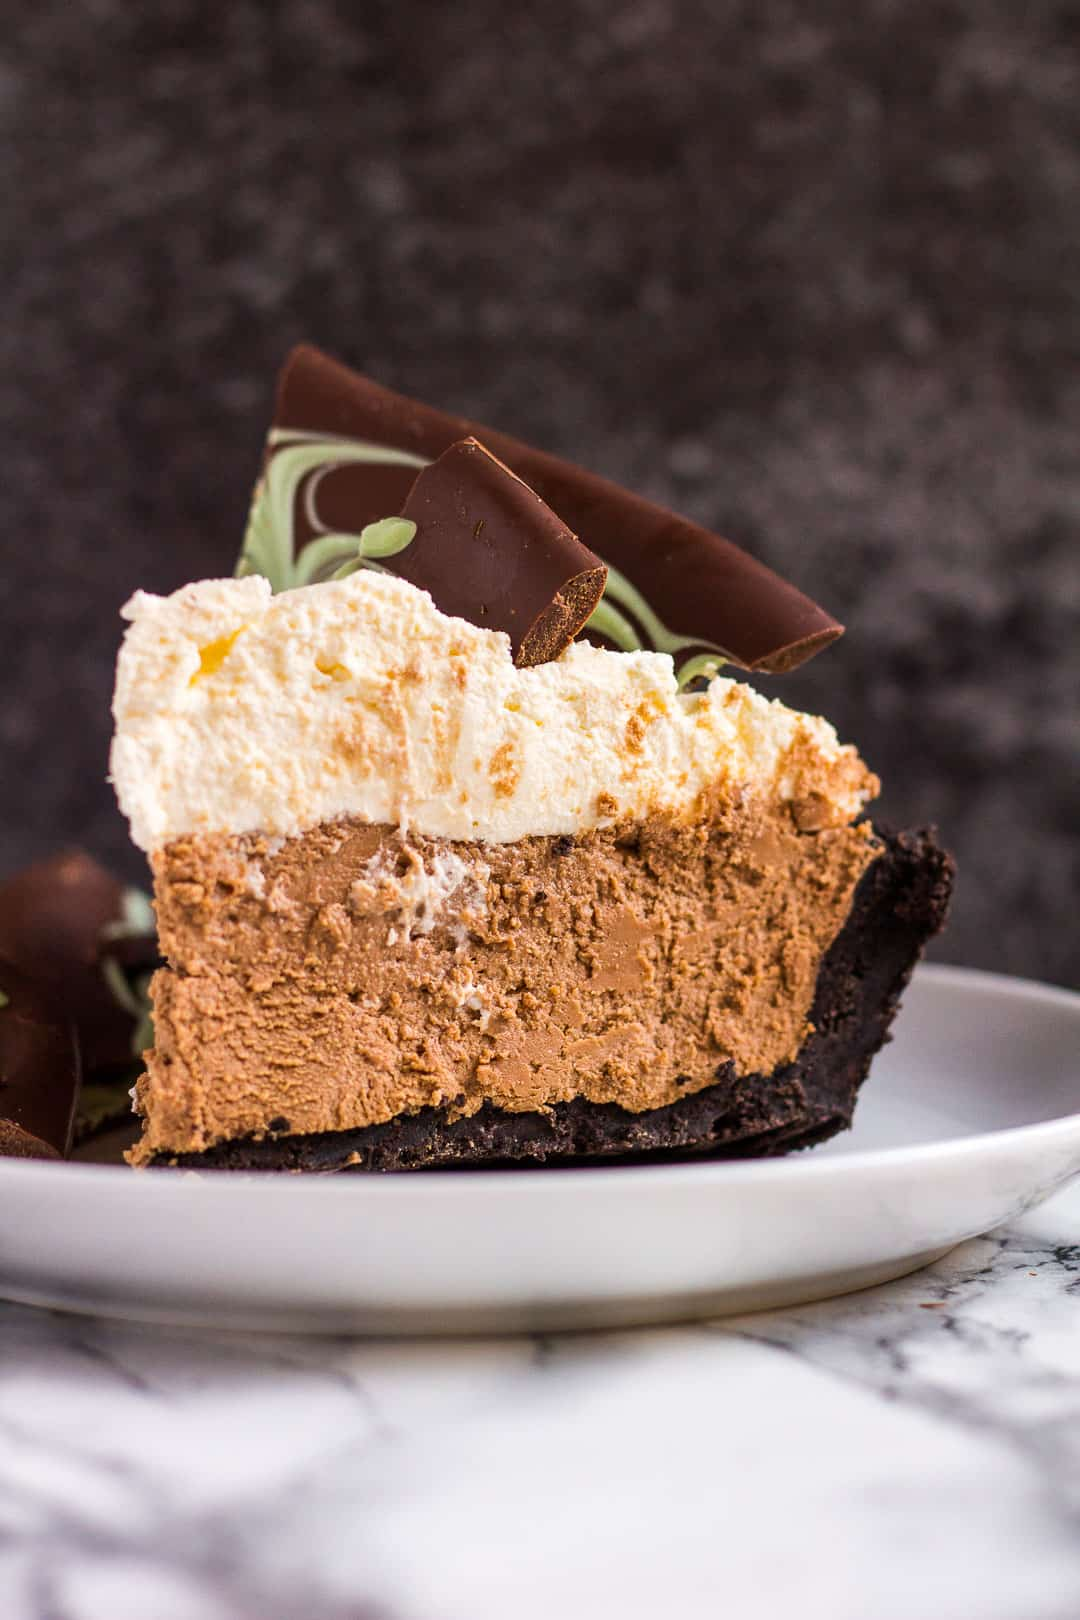 Side-view shot of a slice of mint chocolate cream pie on a small white plate.